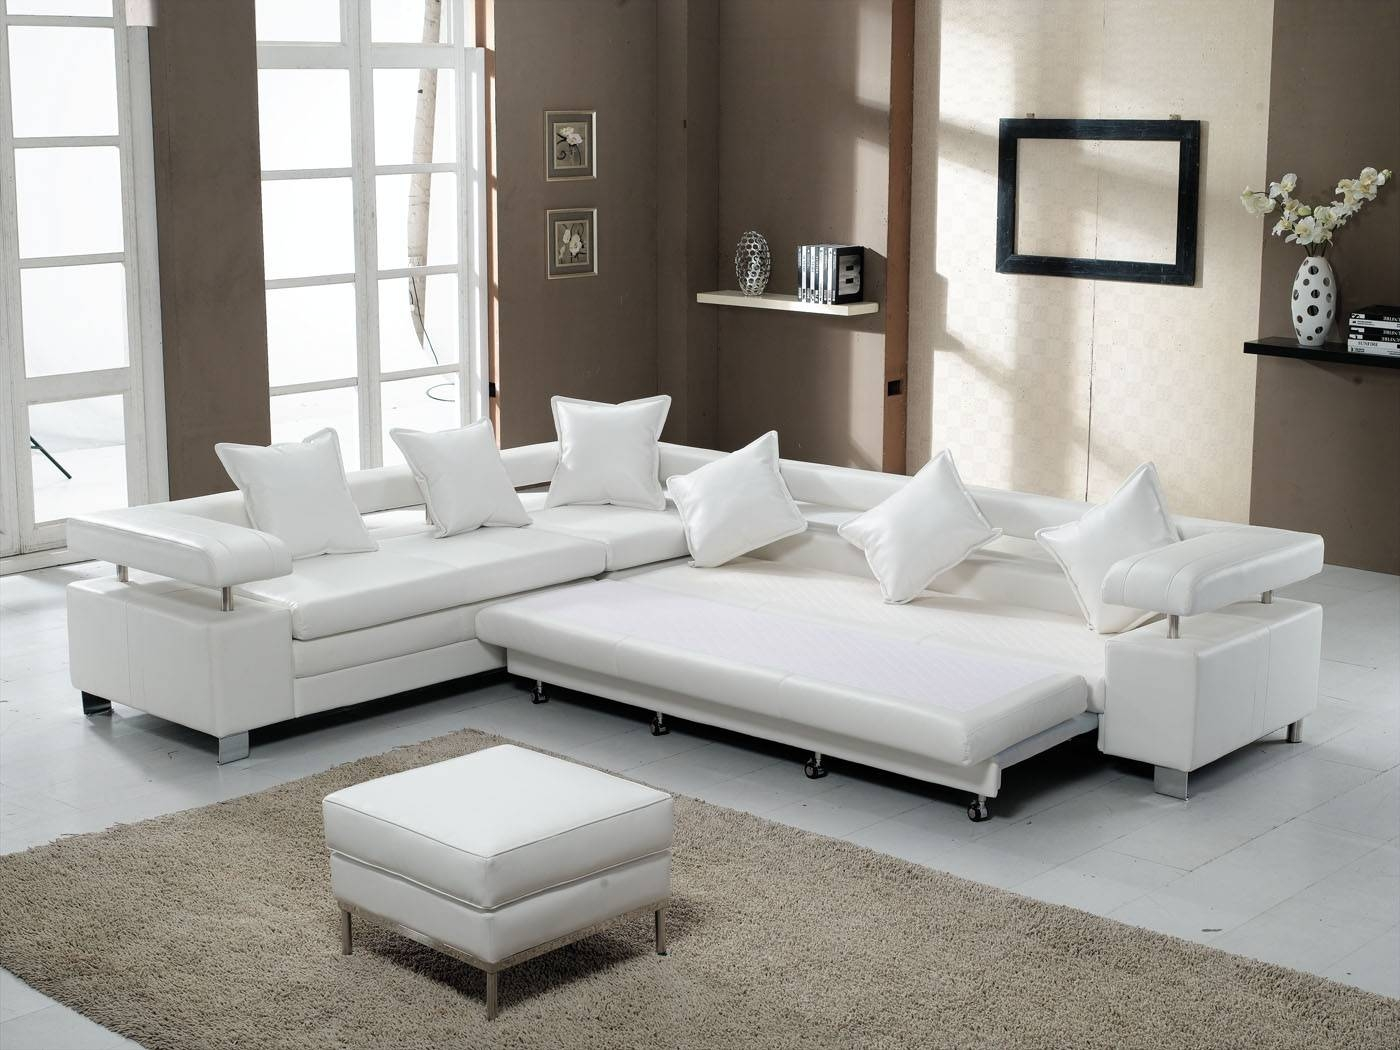 3 Piece Sectional Sleeper Sofa – Ansugallery In 3 Piece Sectional Sleeper Sofa (View 2 of 30)